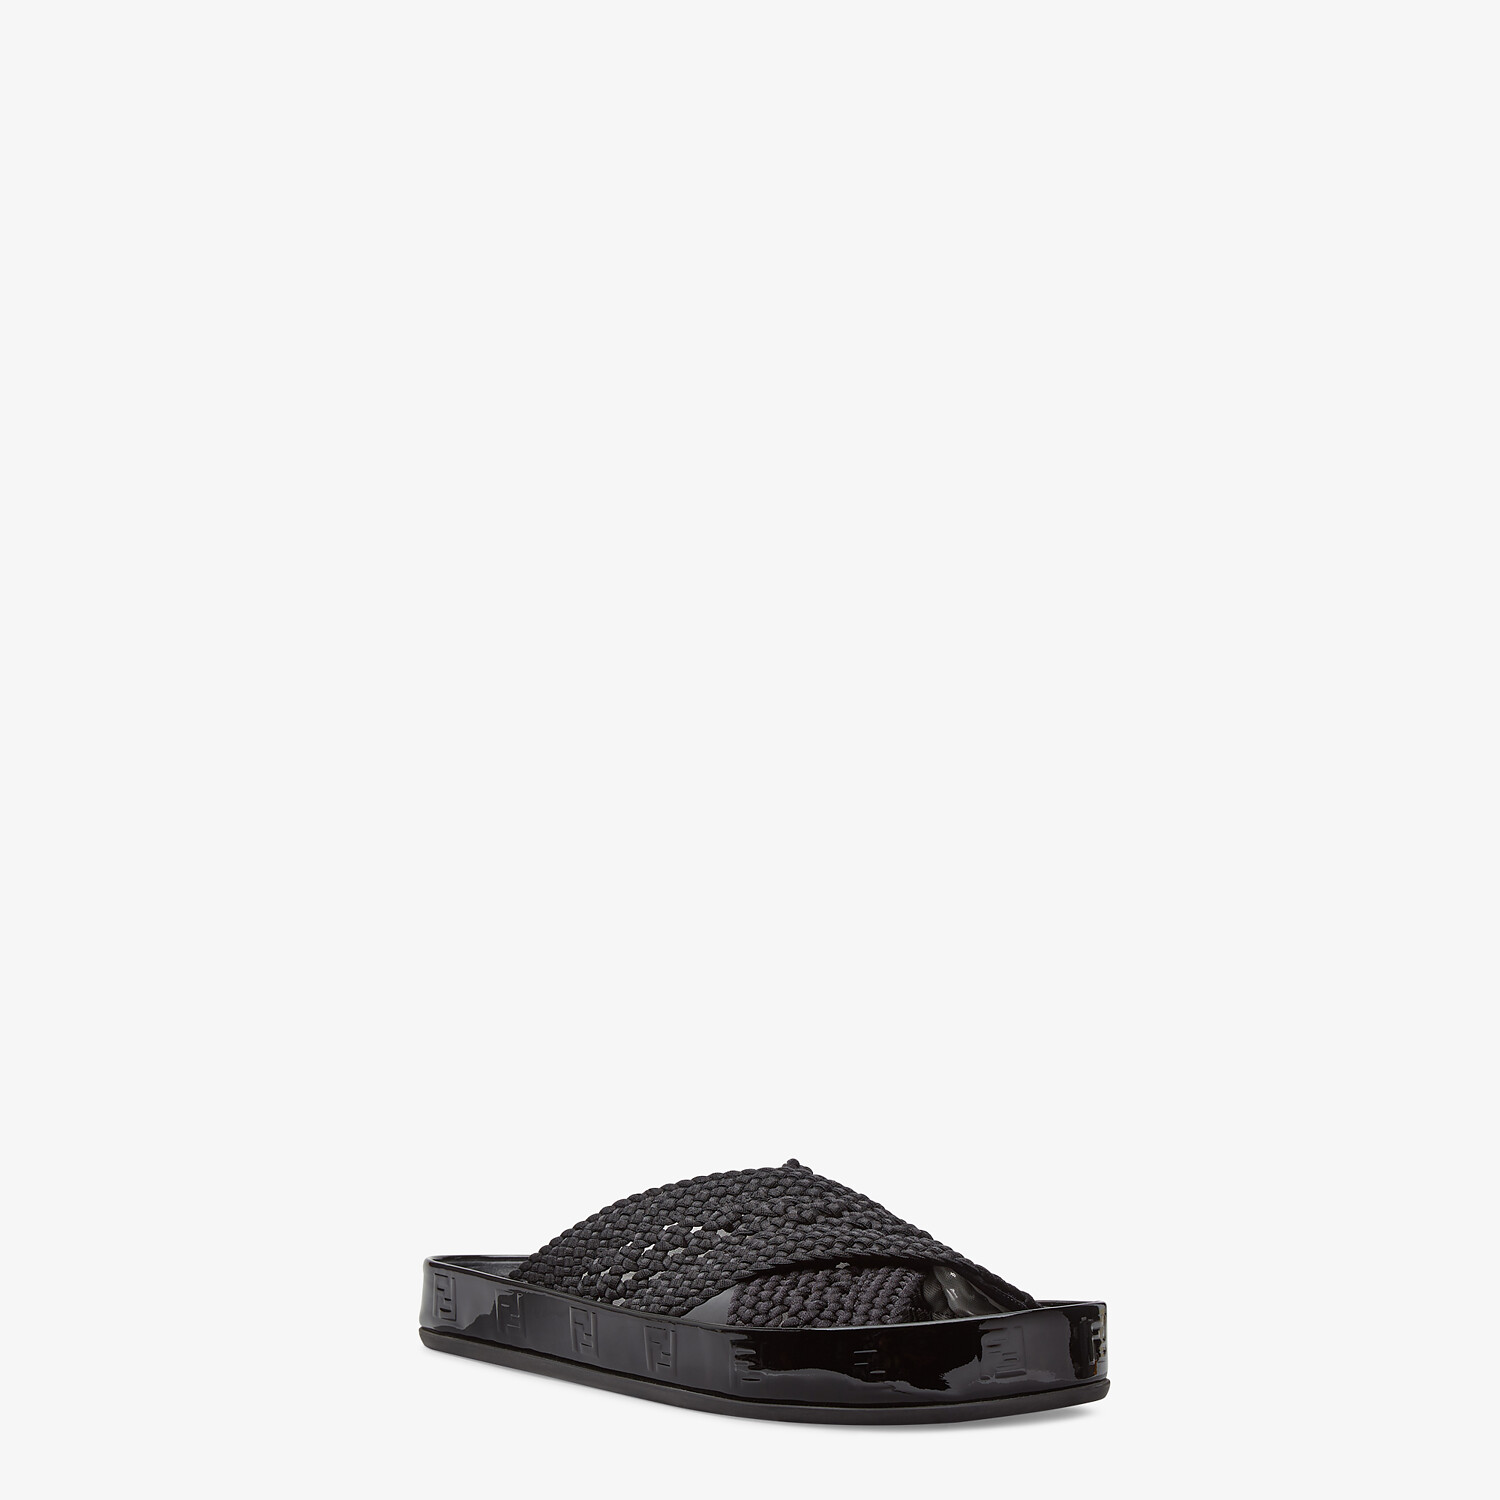 FENDI FENDI REFLECTIONS SLIDES - Black stretch lace flats - view 2 detail